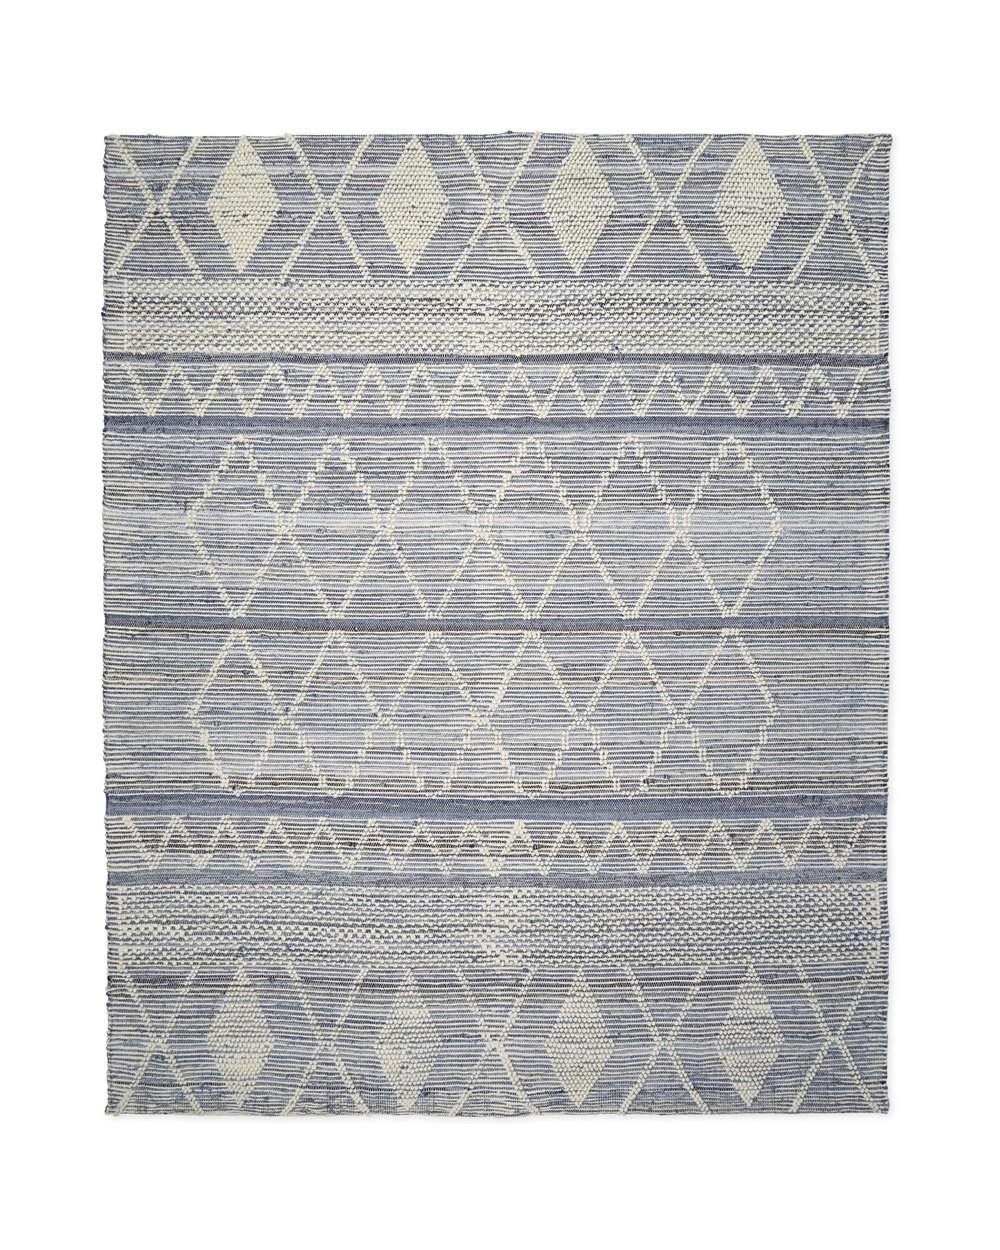 SHOP THE RUG - PRO TIP: Ever wonder if you have the right size rug? Make sure there's about 12 inches behind your dining chairs while they're tucked into your dining table.